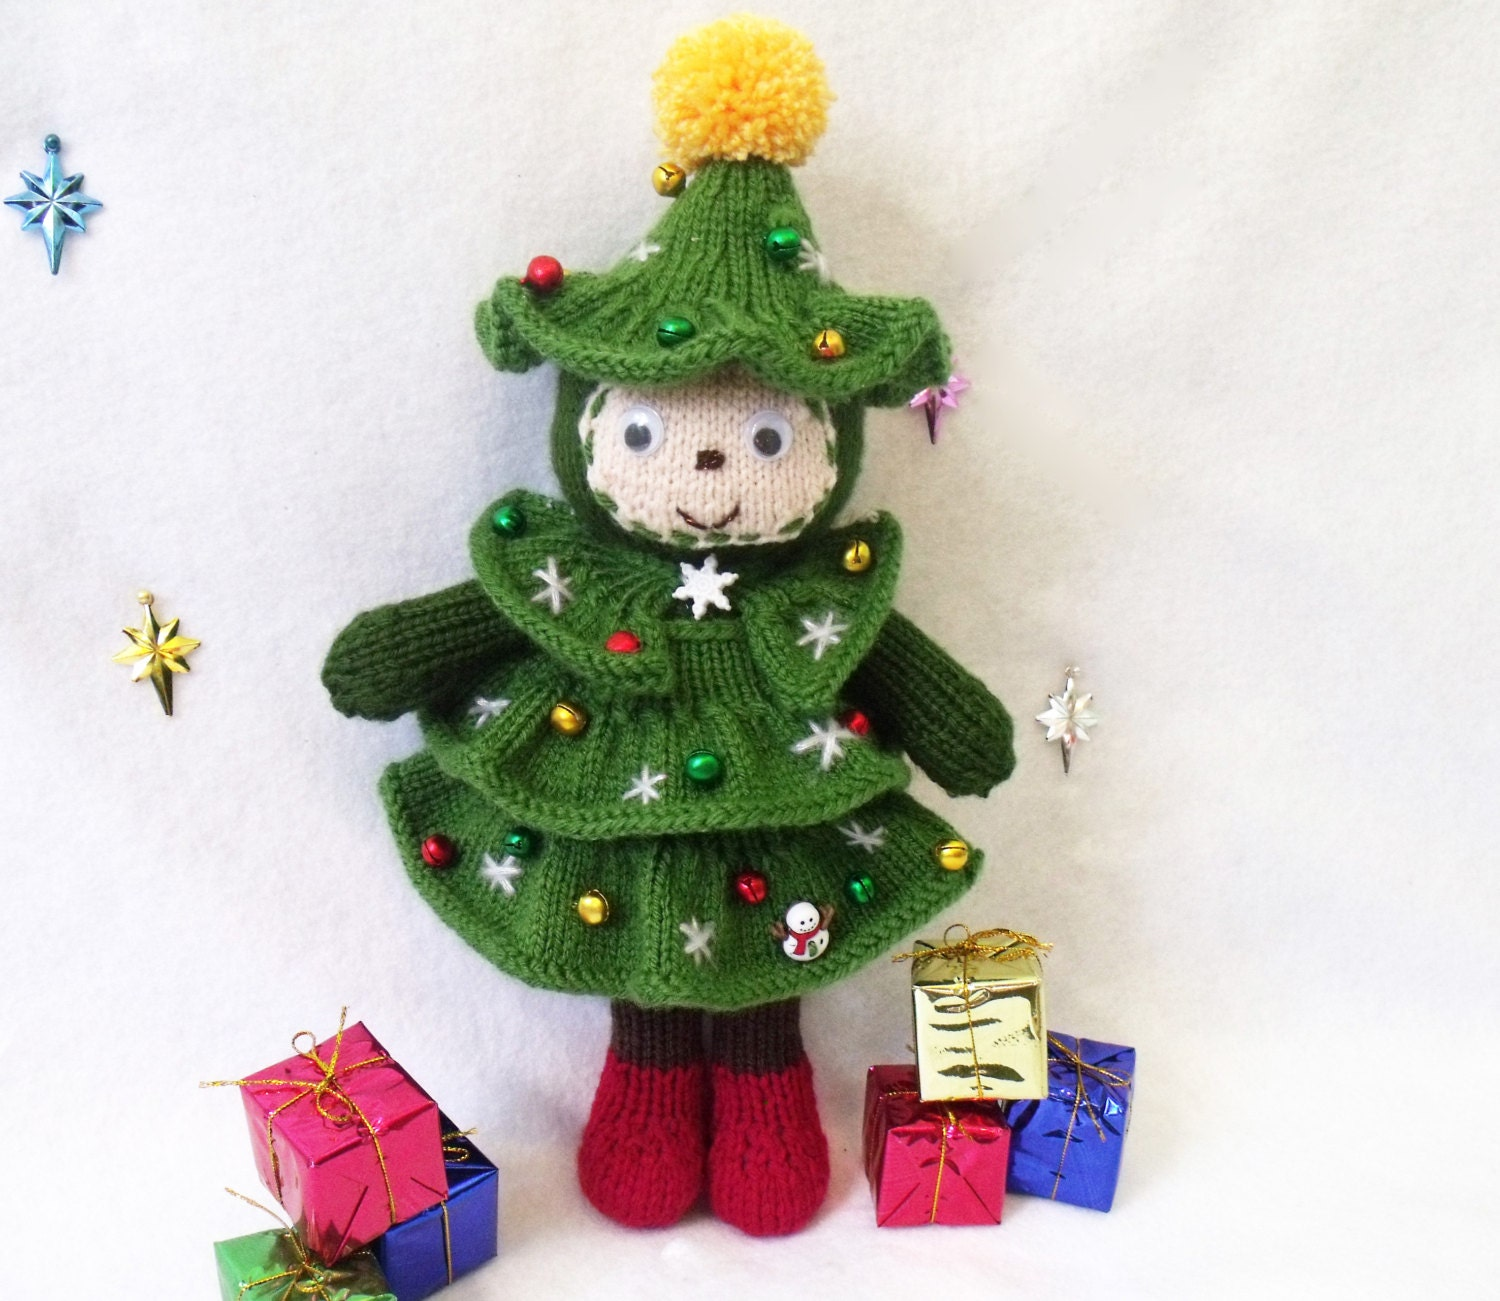 Christmas tree doll. Toy knitting pattern. Christmas